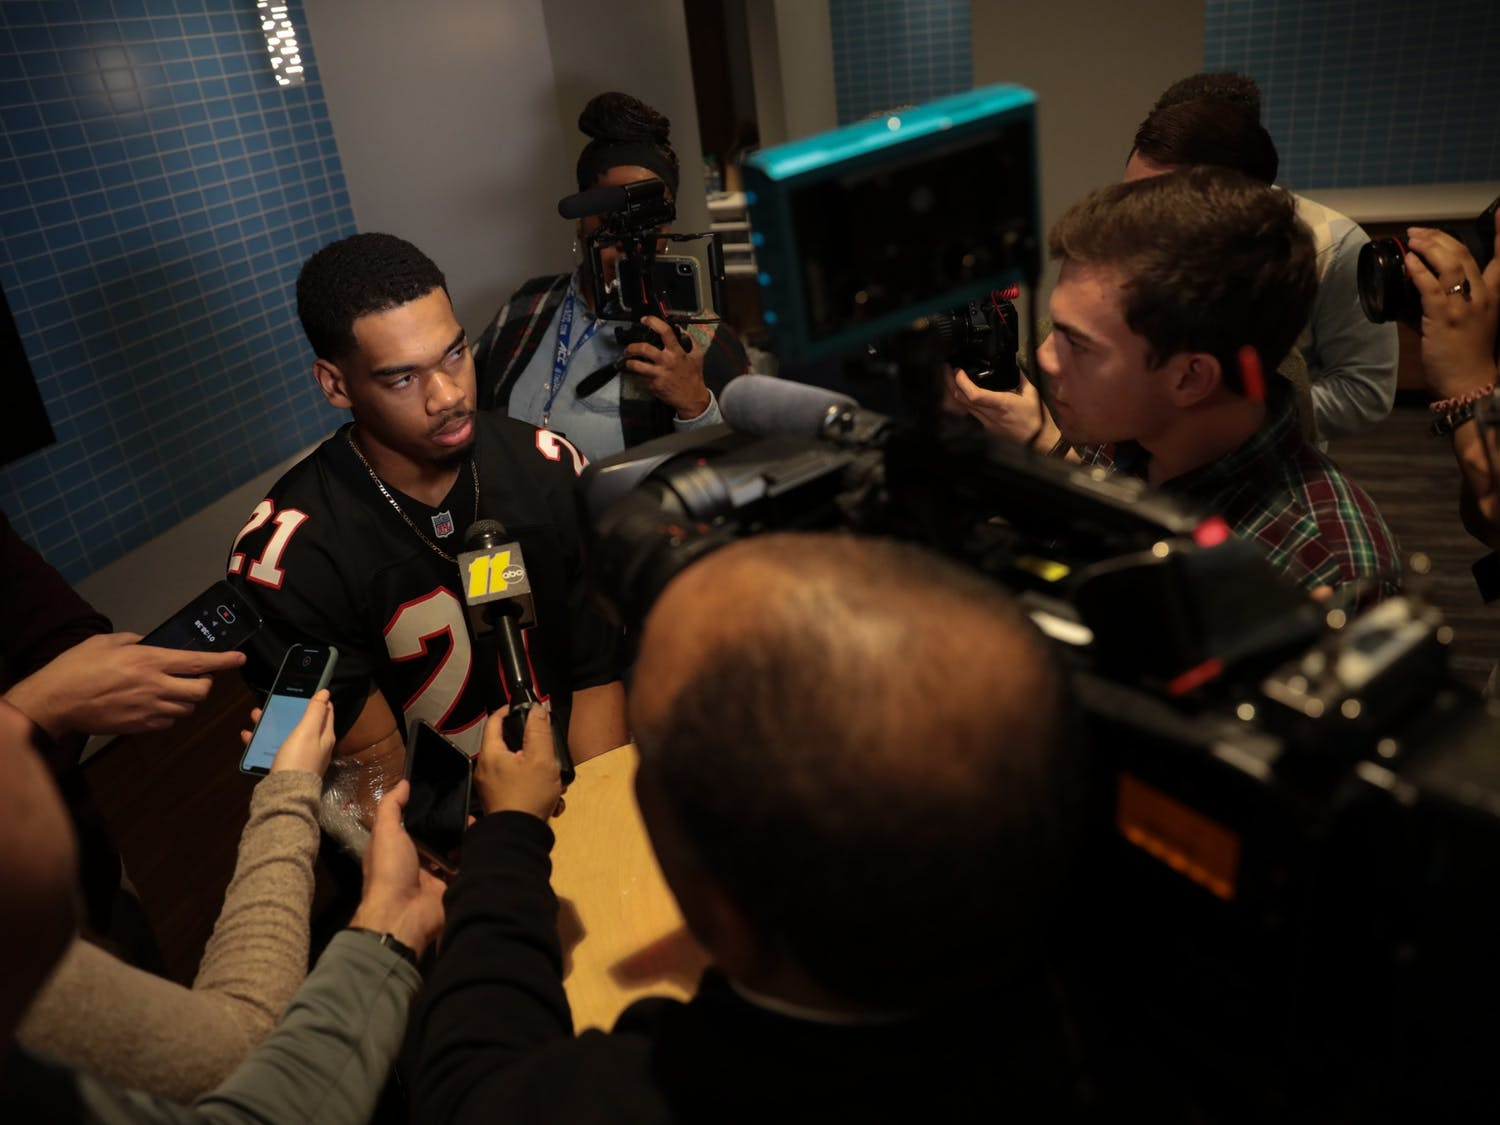 UNC junior forward Garrison Brooks fields questions from members of the media following a game against Pitt in the Smith Center on Wednesday, Jan. 8, 2020. The Tar Heels lost to the Panthers 65-73.